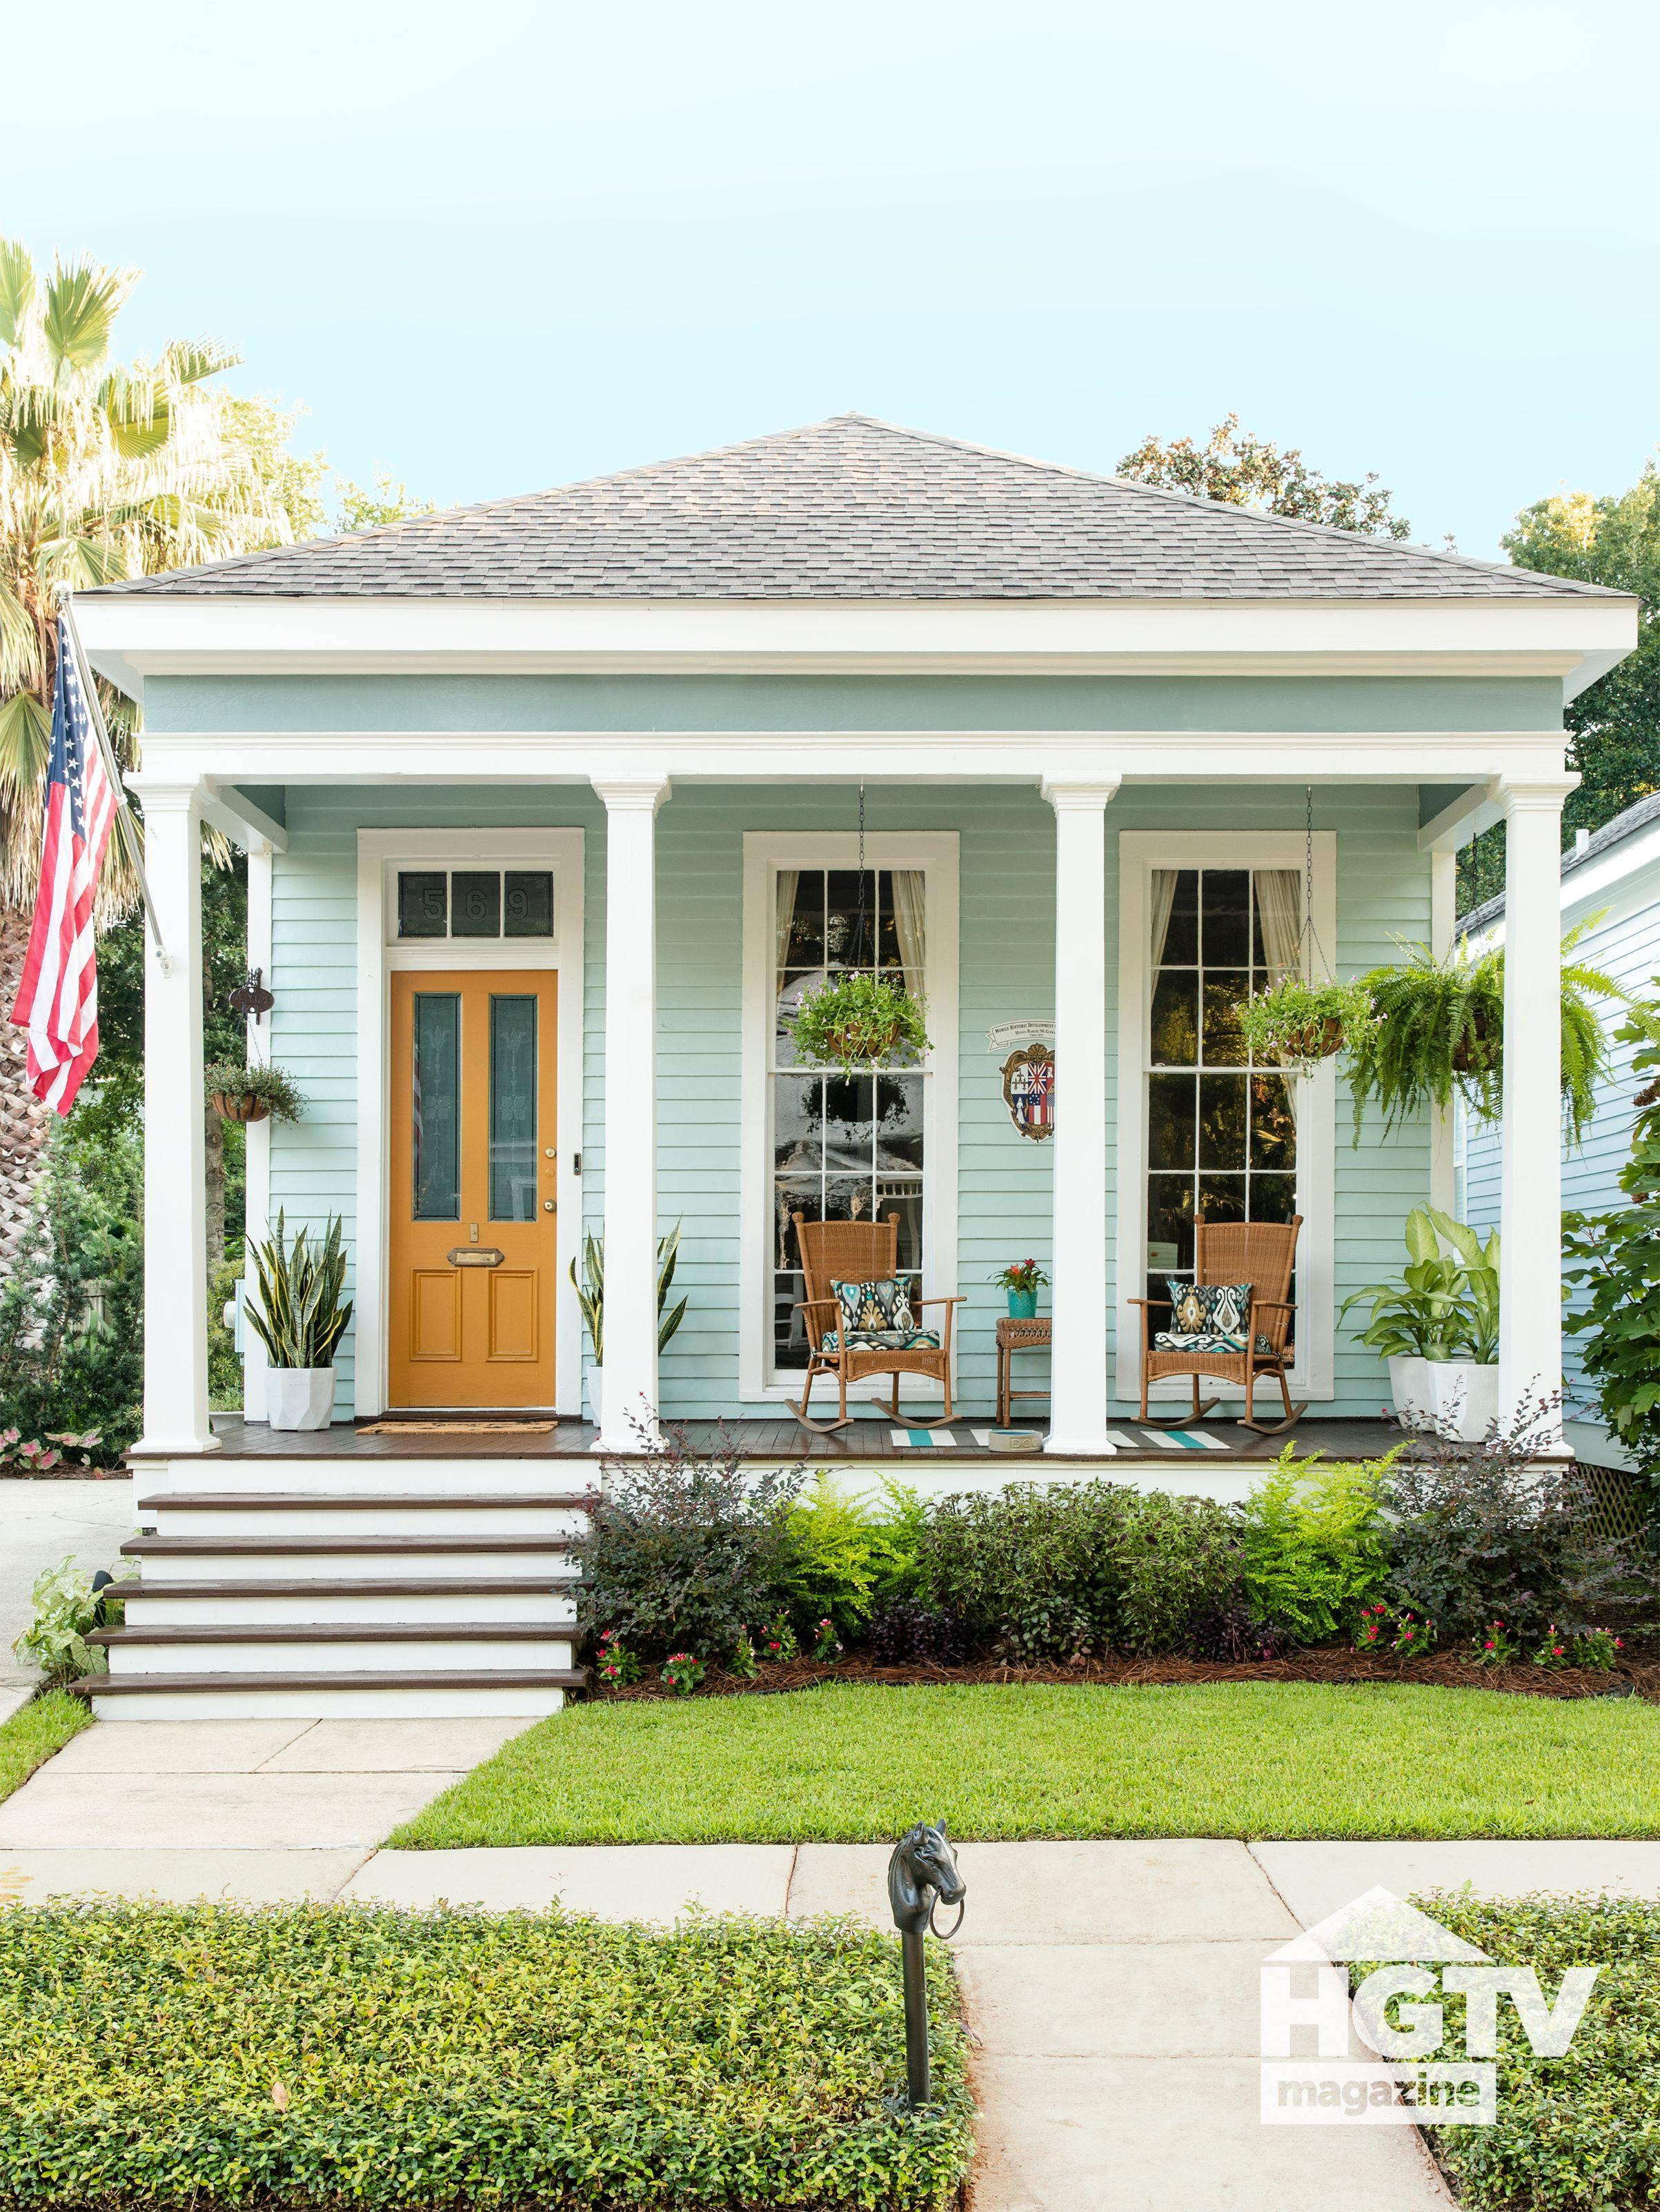 This adorable house in Alabama is decorated with an orange door, wicker chairs and blue accessories. See more on HGTV.com.